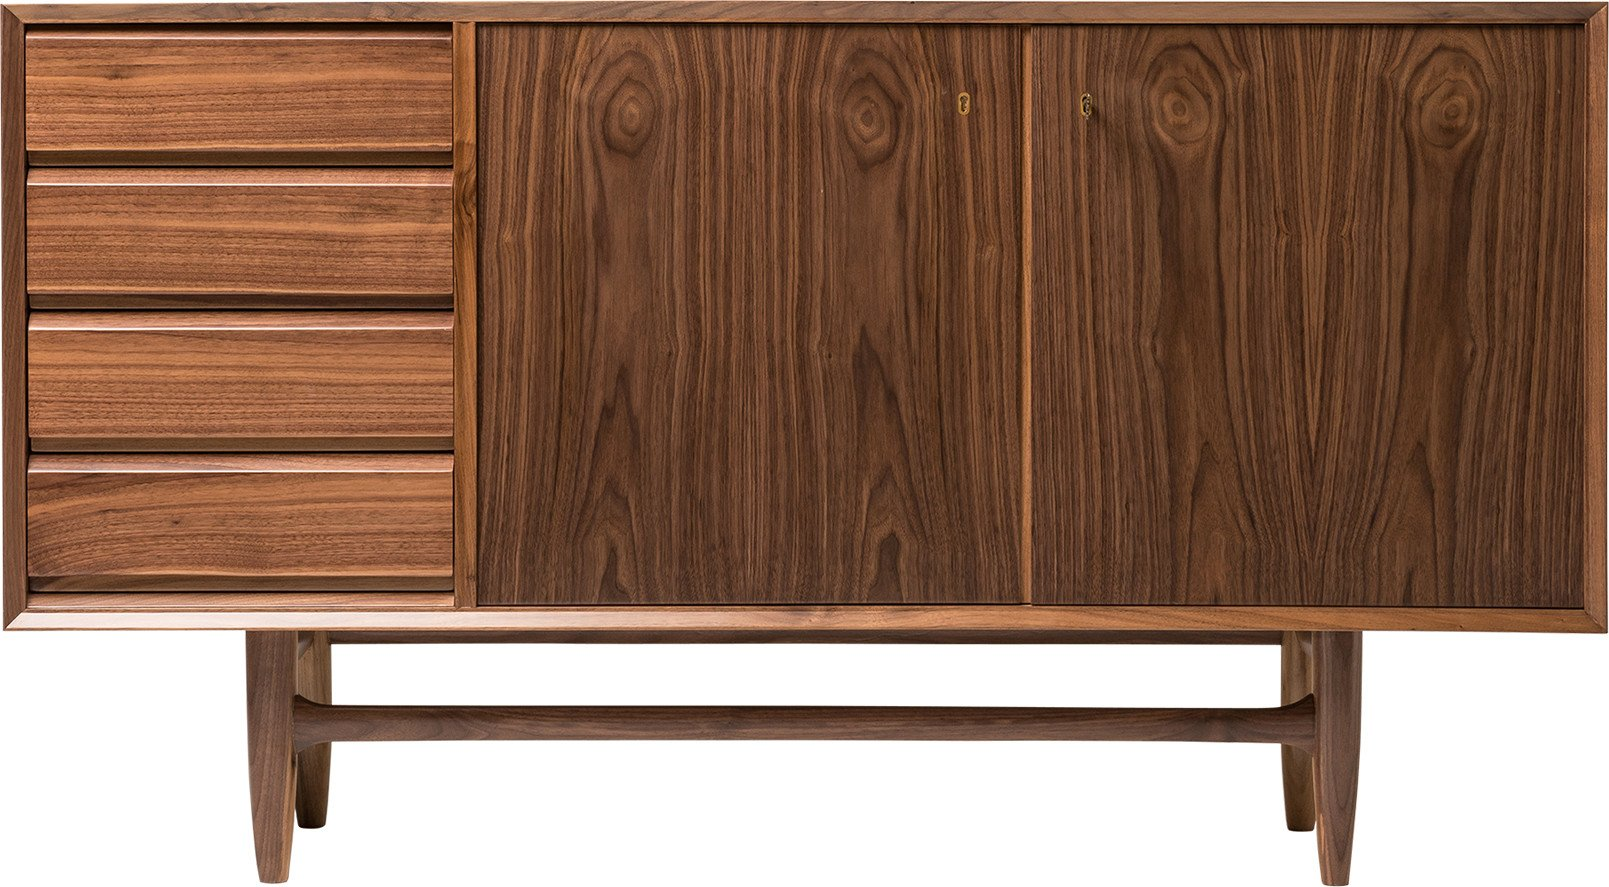 Caravela 1.5 Sideboard, Olaio - 473385 - photo